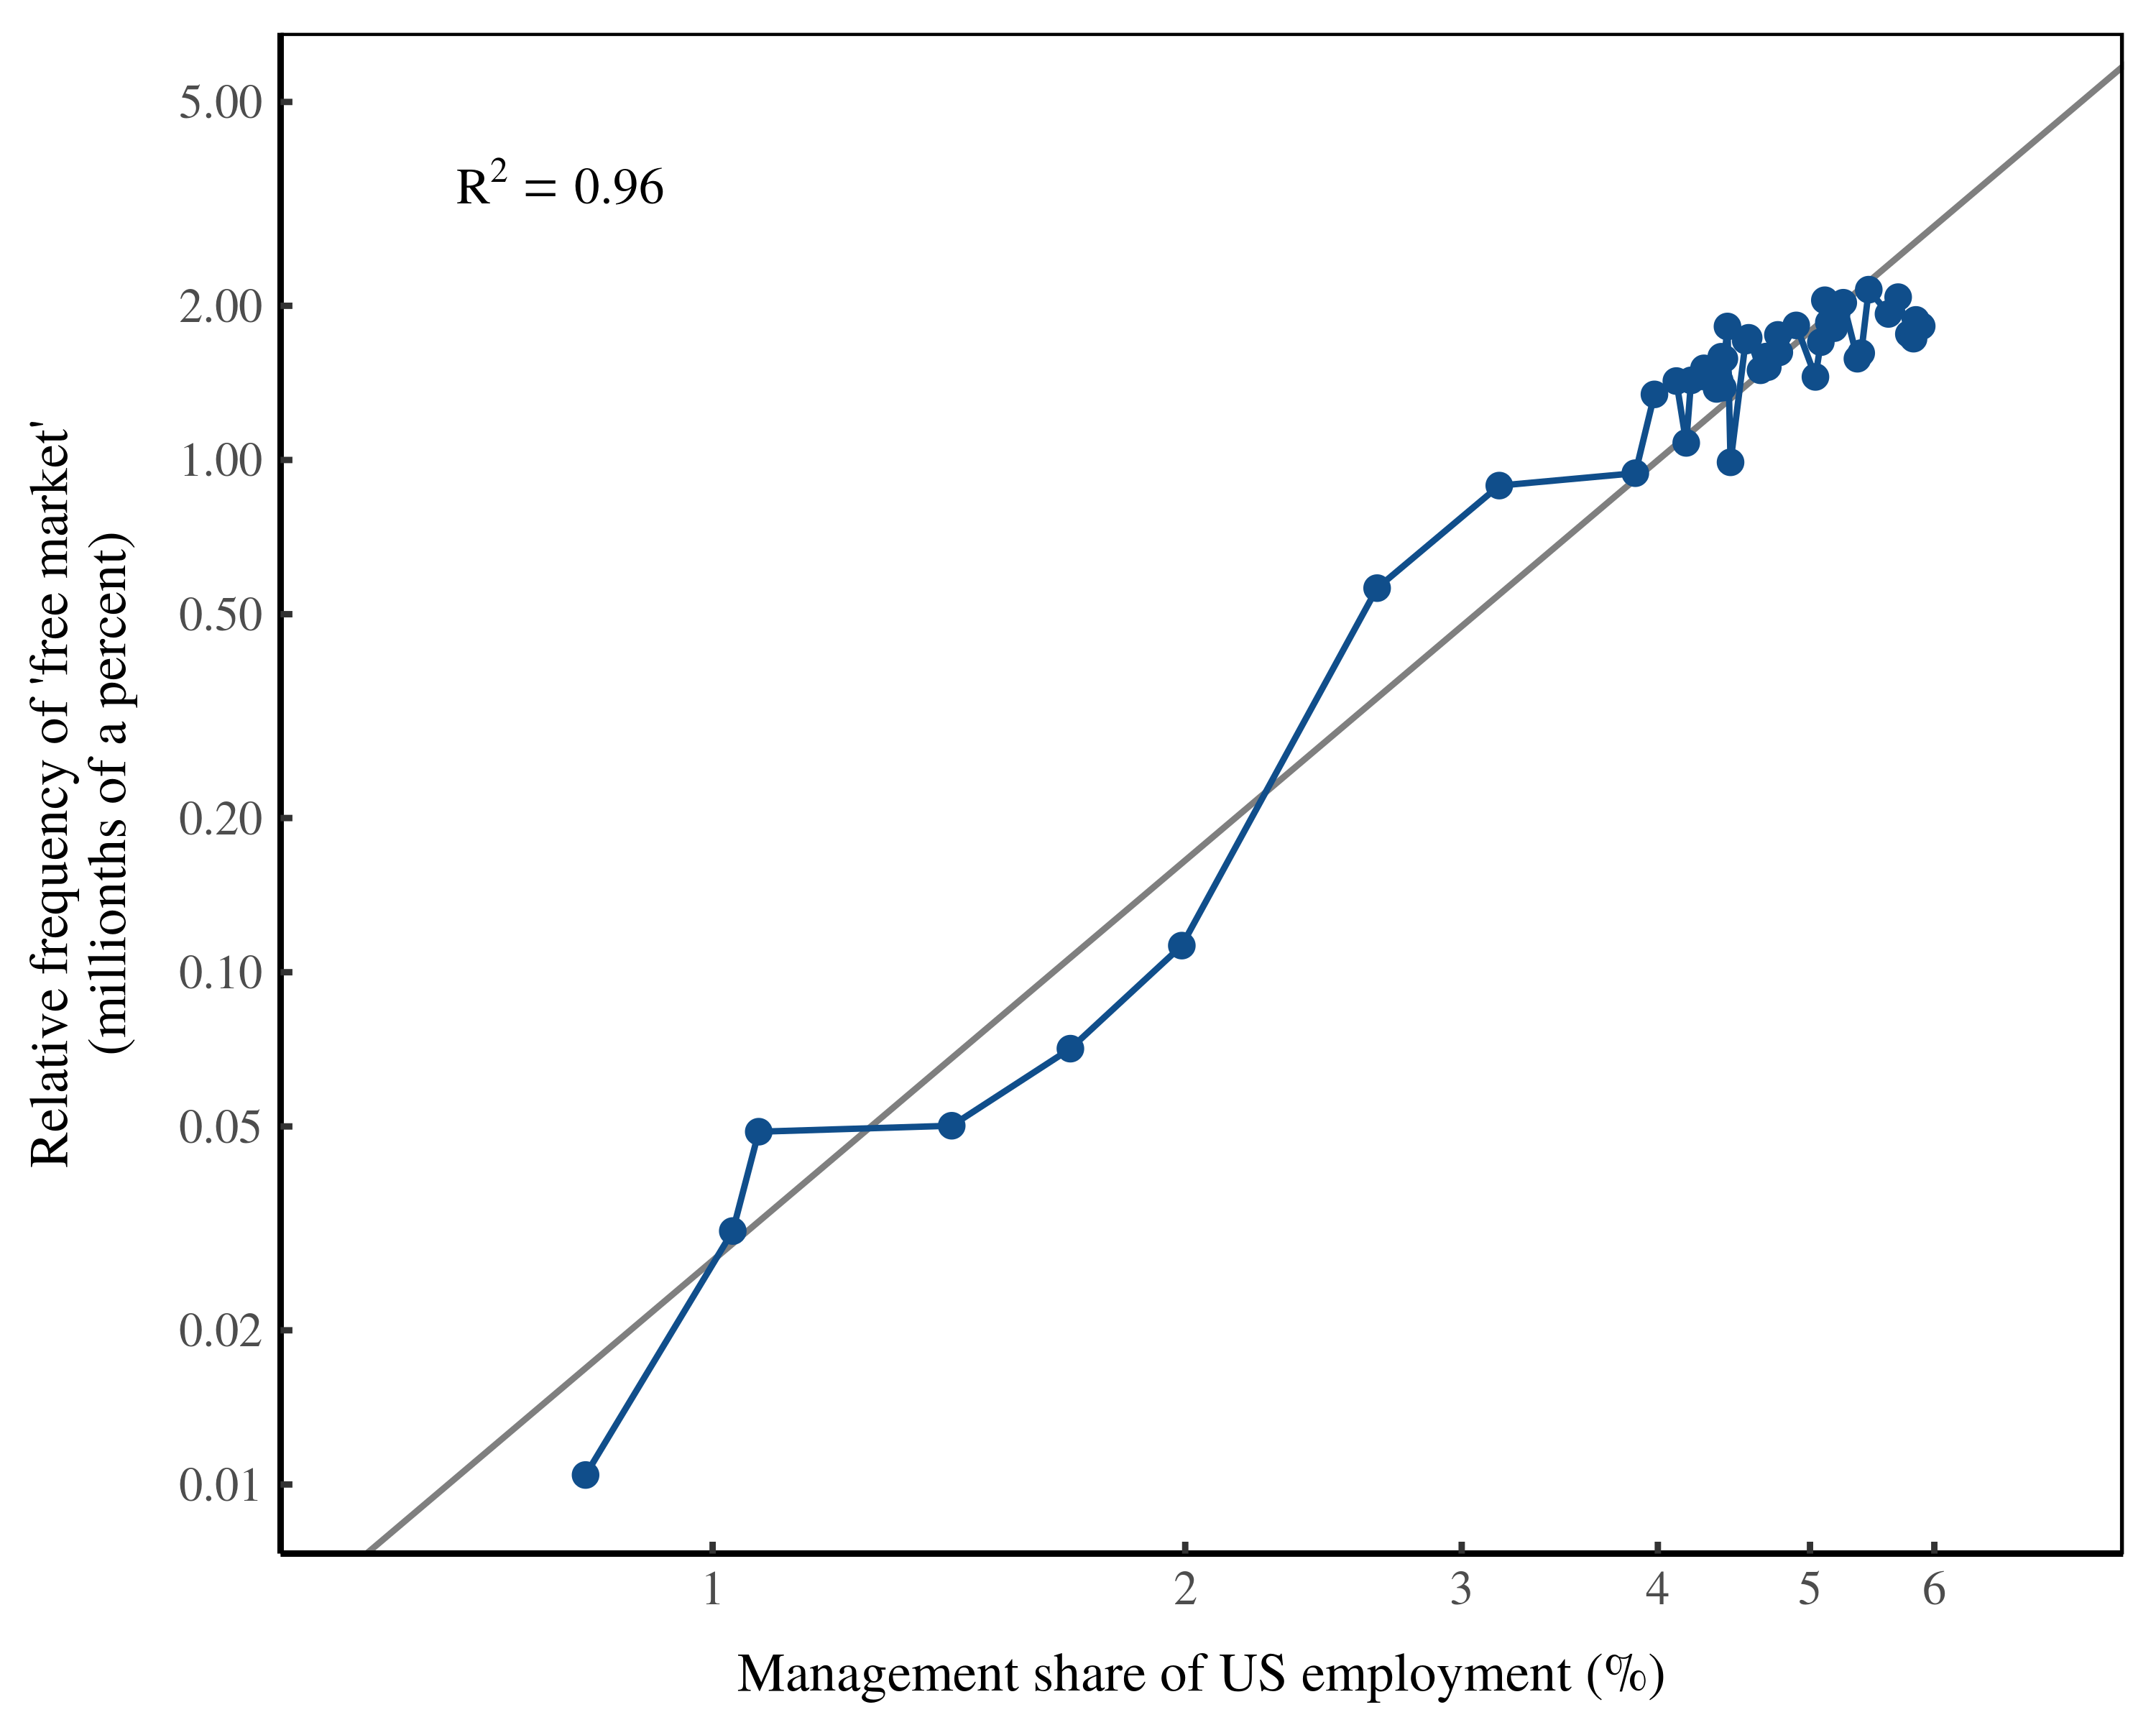 frequency of 'free market' vs management share of employment